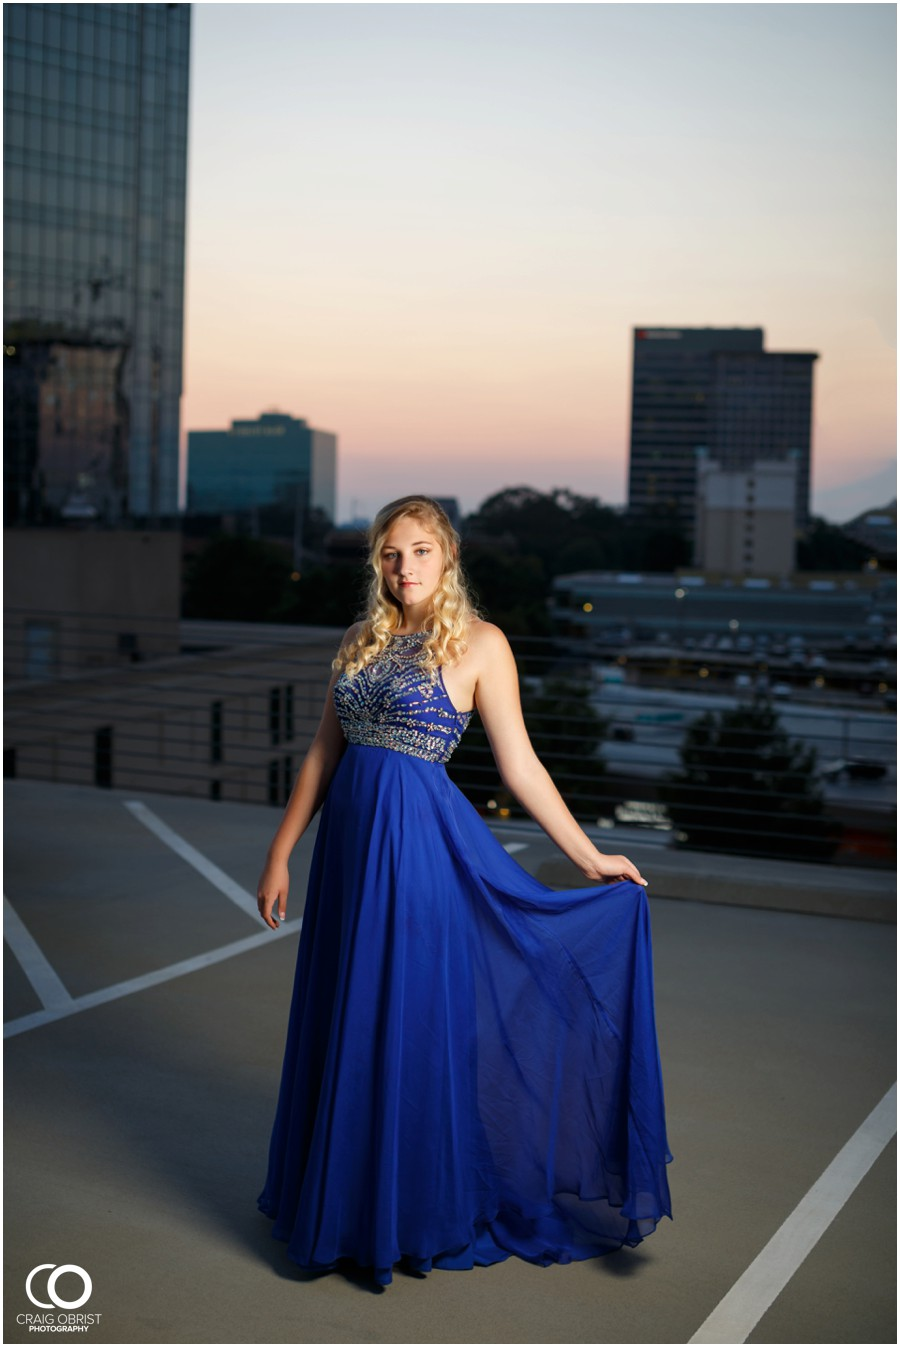 Buckhead Atlanta Senior Portraits Fashion wind_0014.jpg